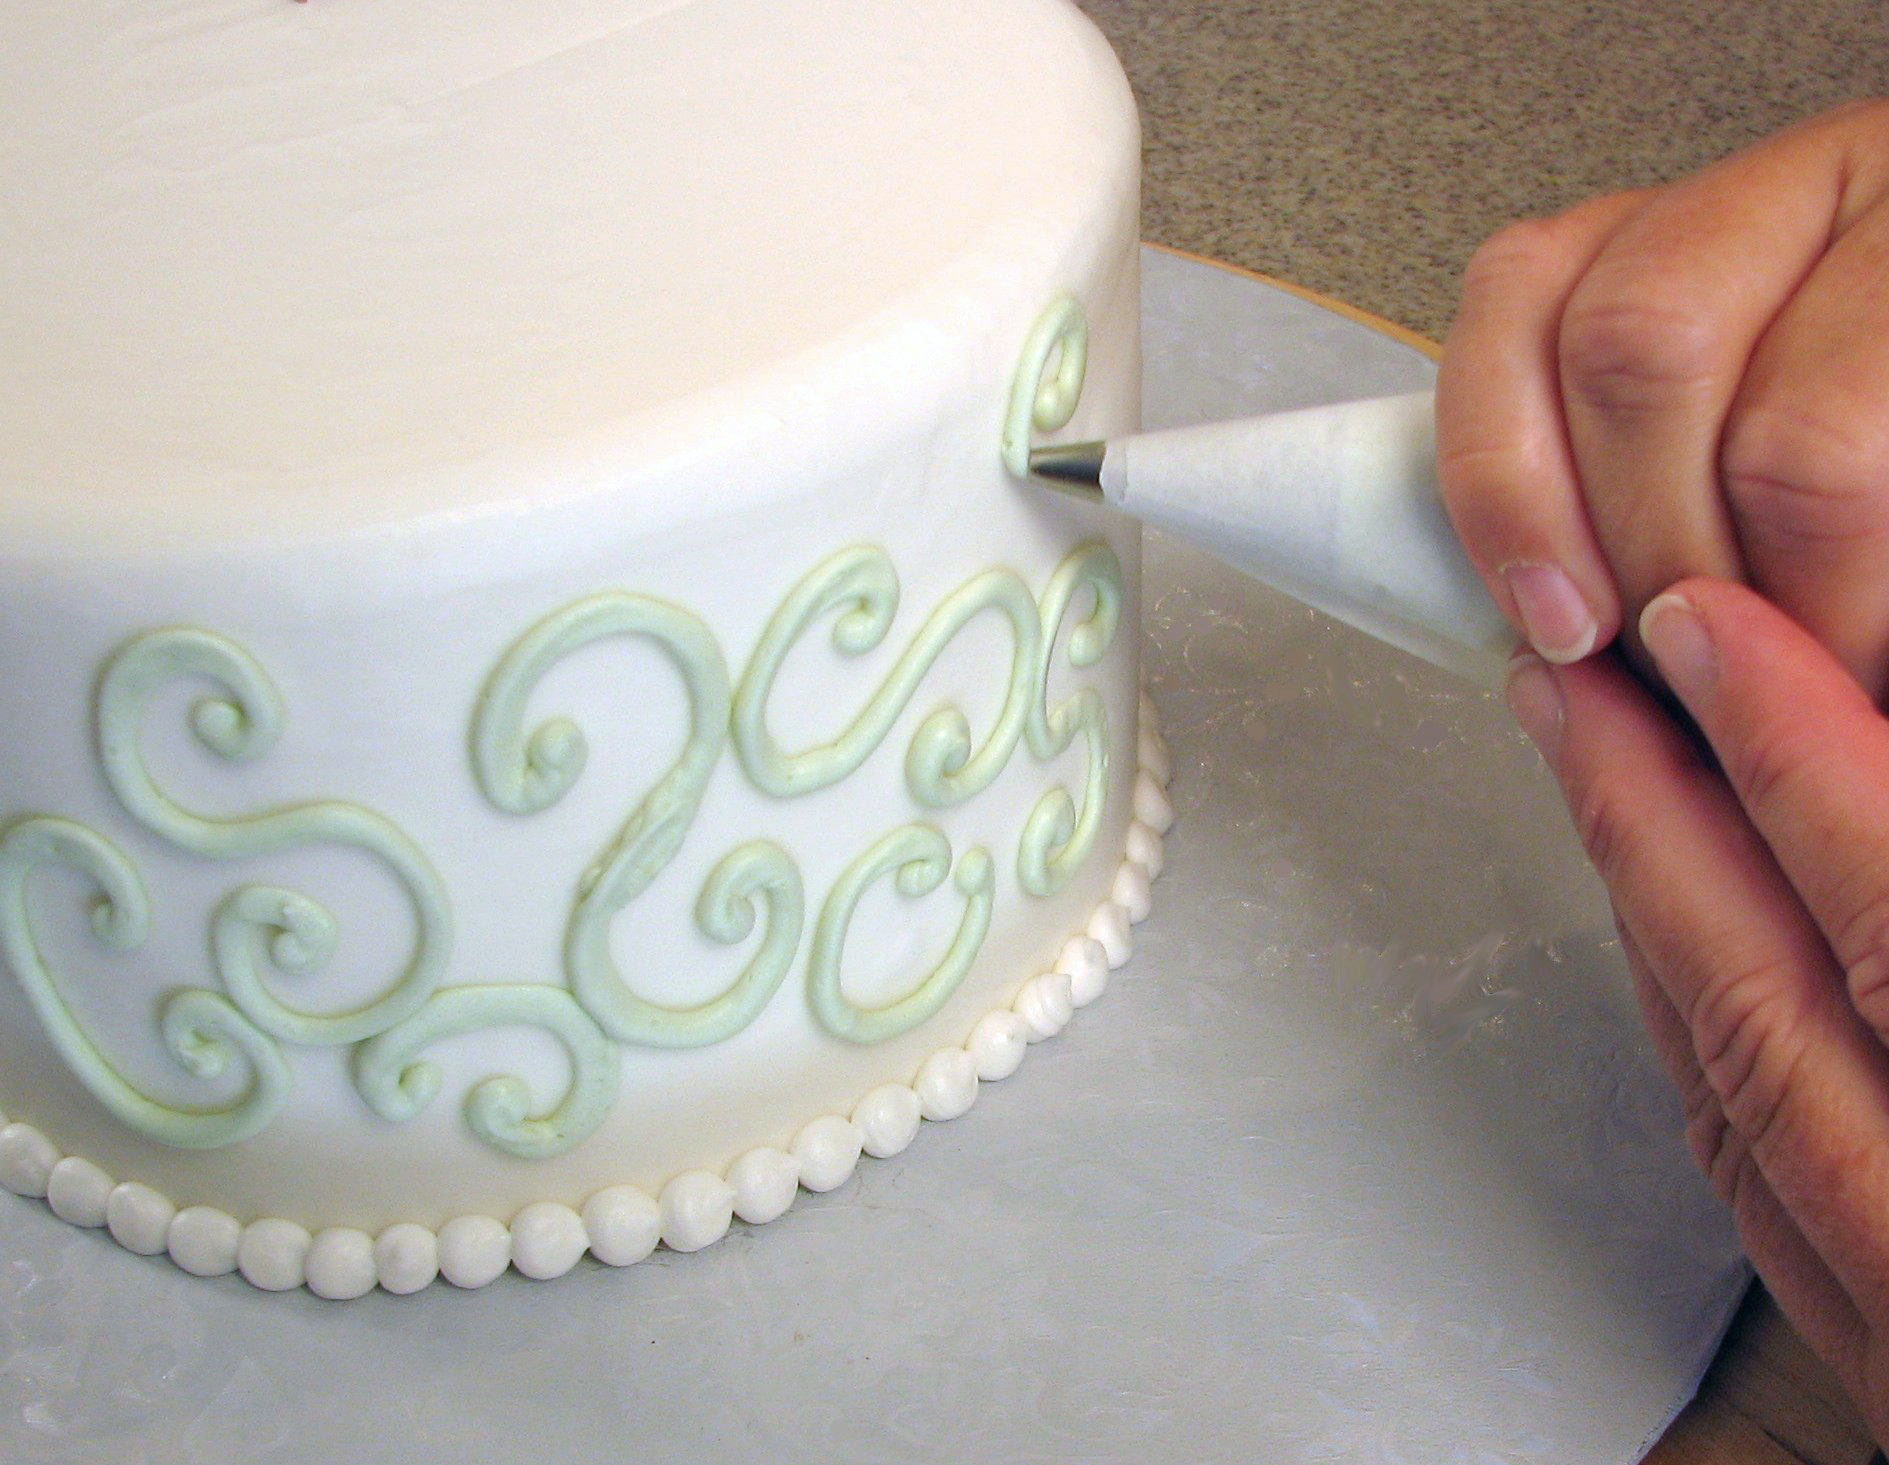 File:Piping buttercream onto cake.JPG - Wikipedia